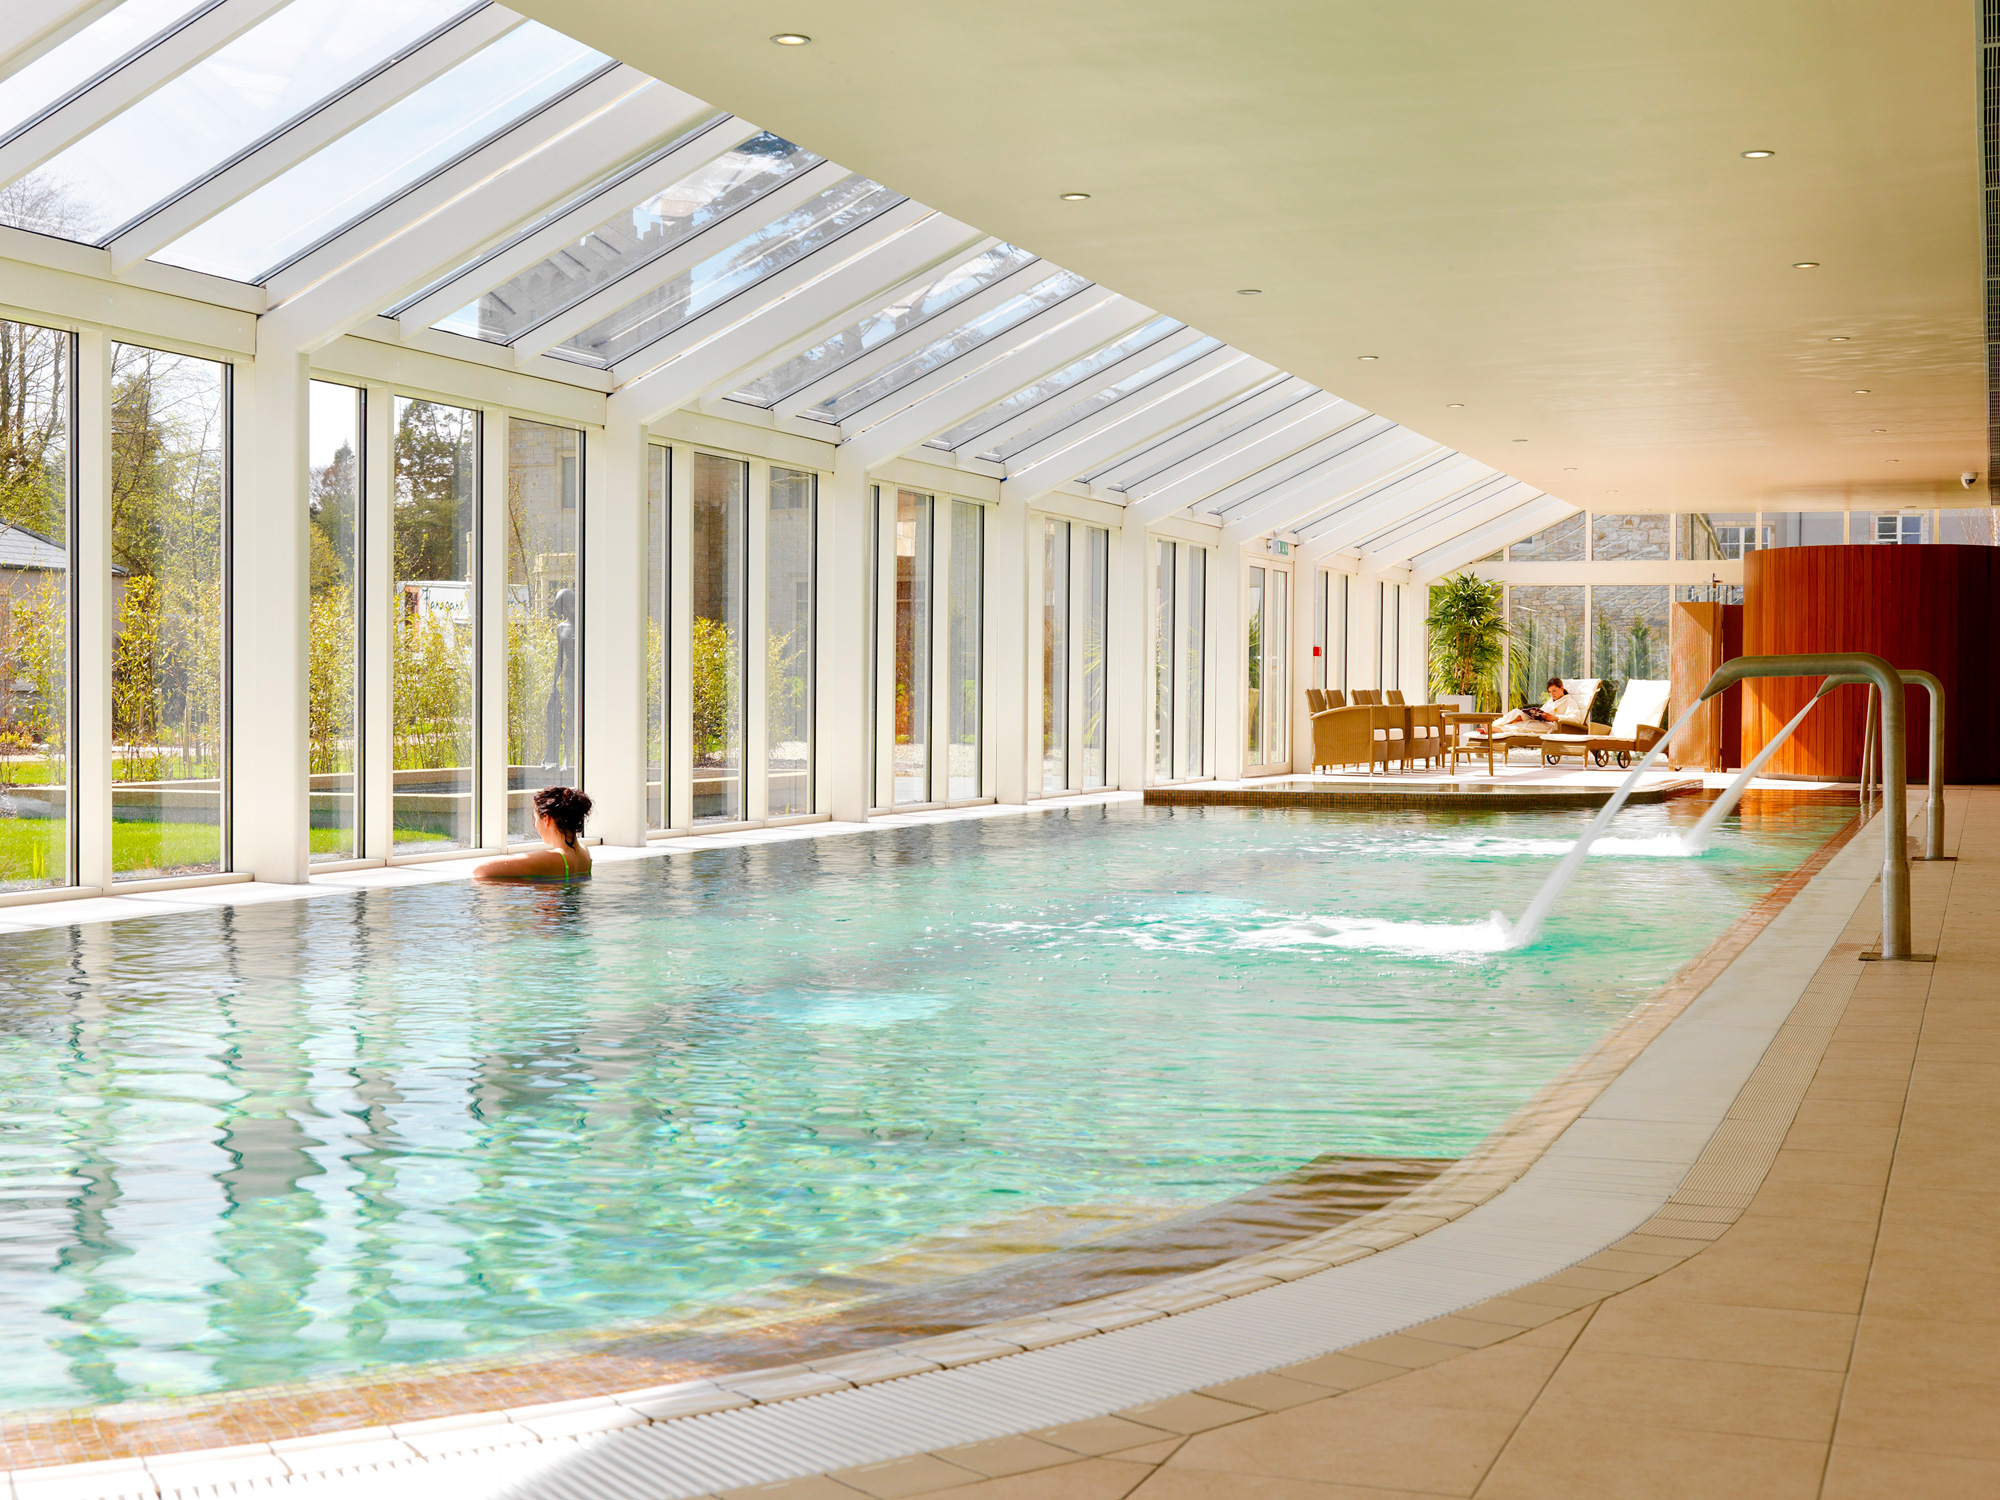 If you want to truly indulge yourself, try the excellent Spa Solis on site.